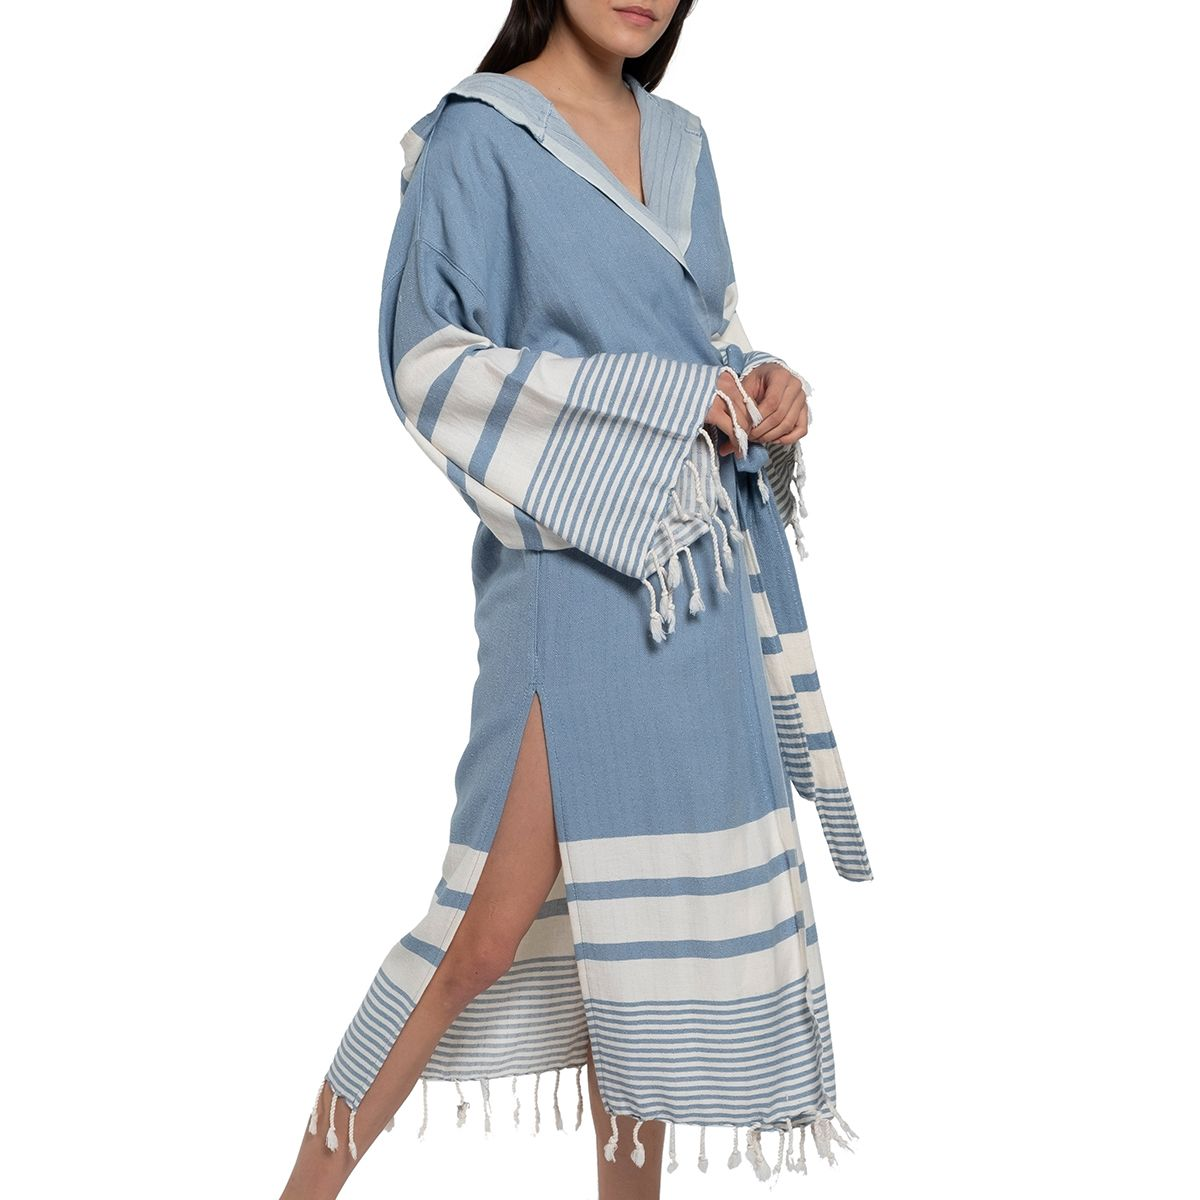 Bathrobe Tabiat / Air Blue